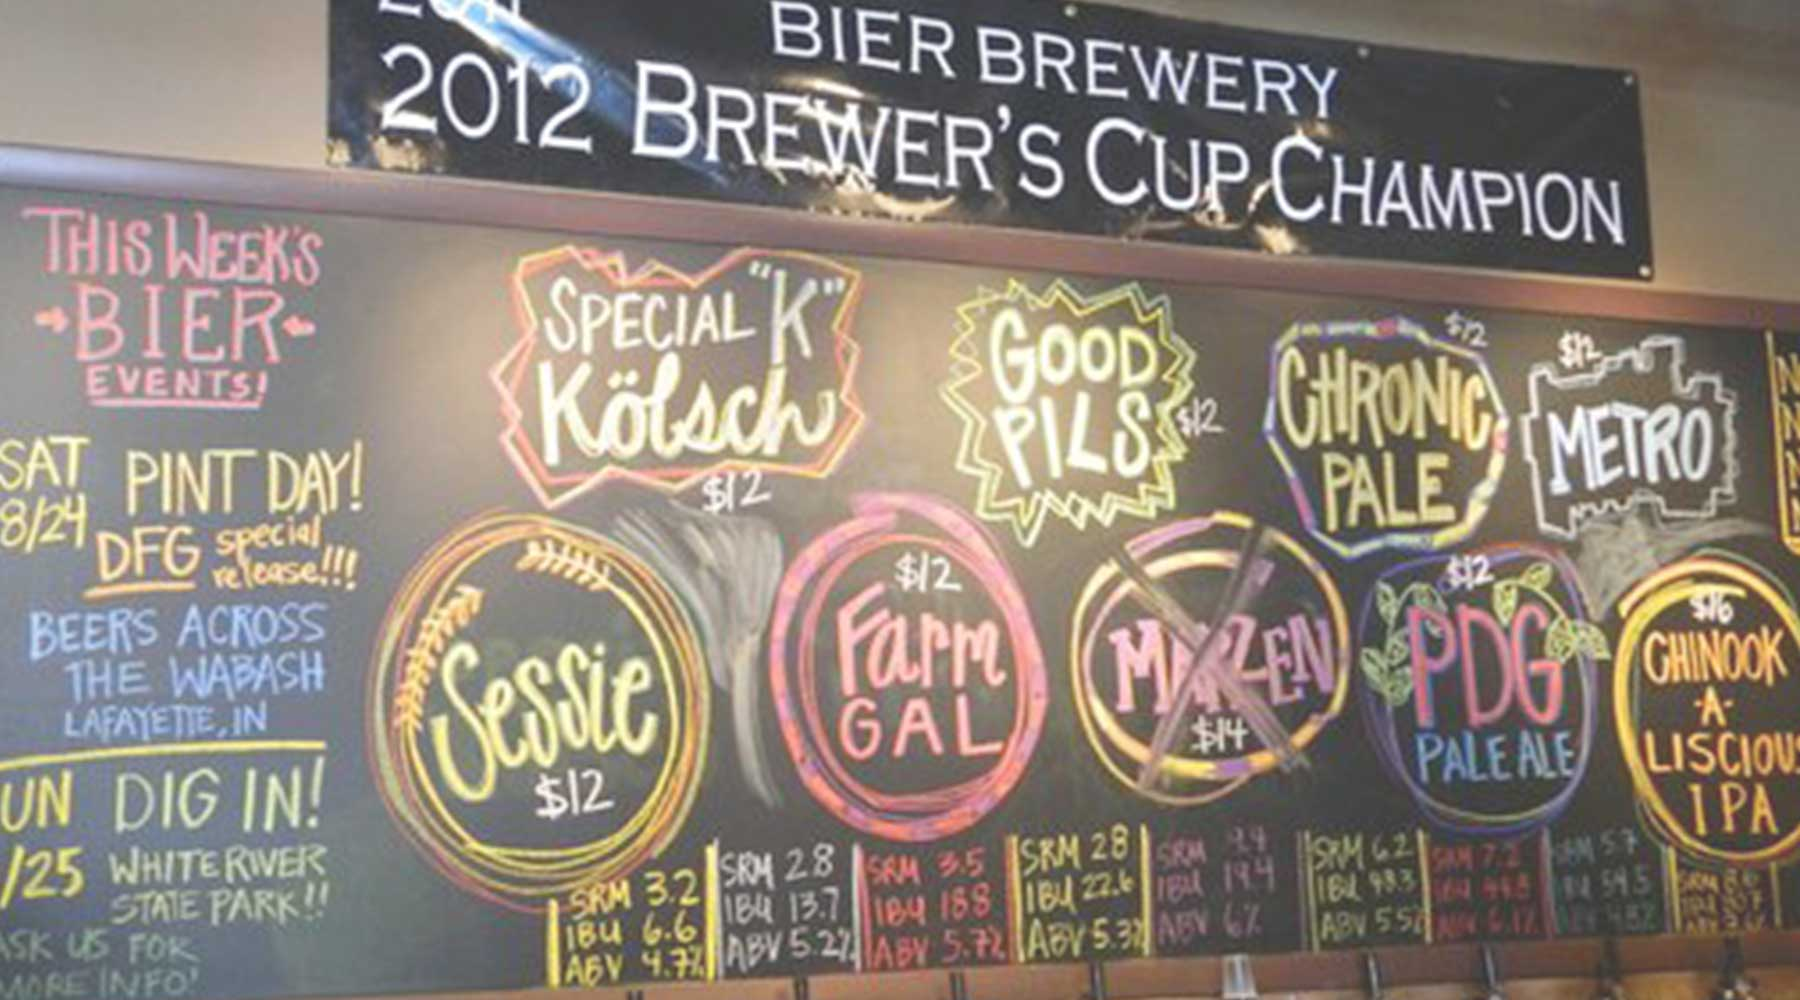 Bier Brewery and Taproom | Just Wine